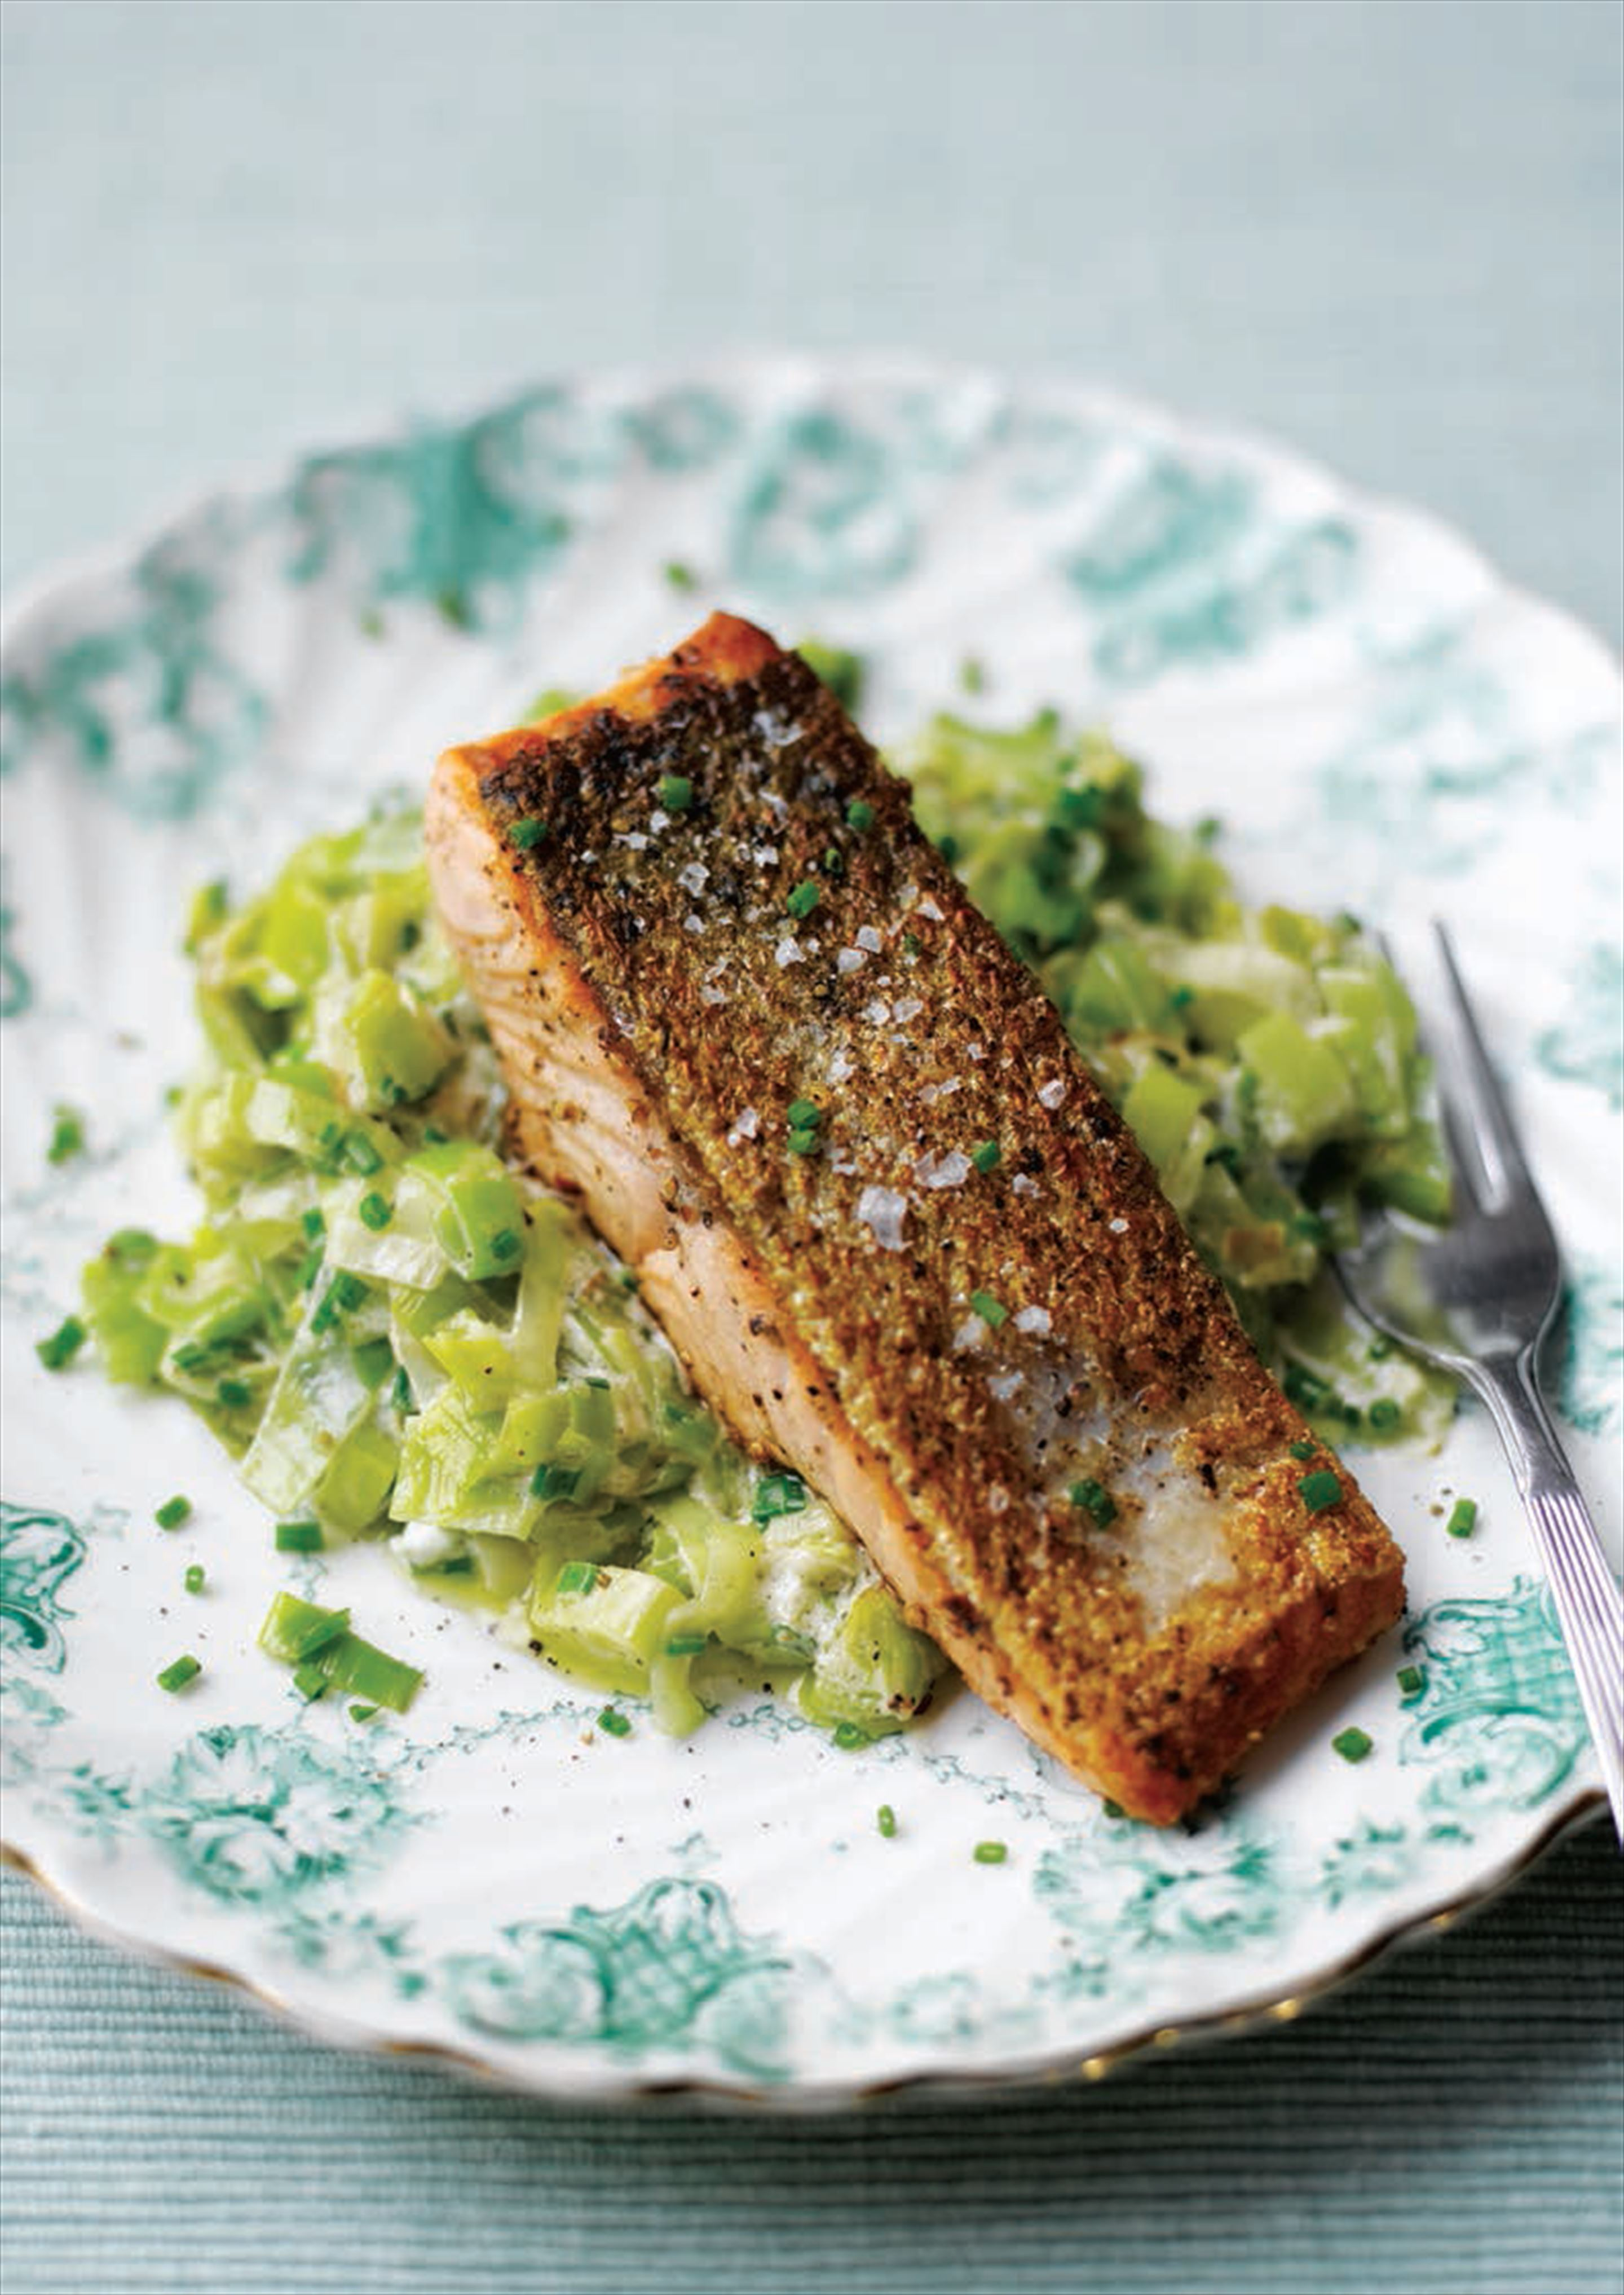 Seared salmon with creamed leeks and chives